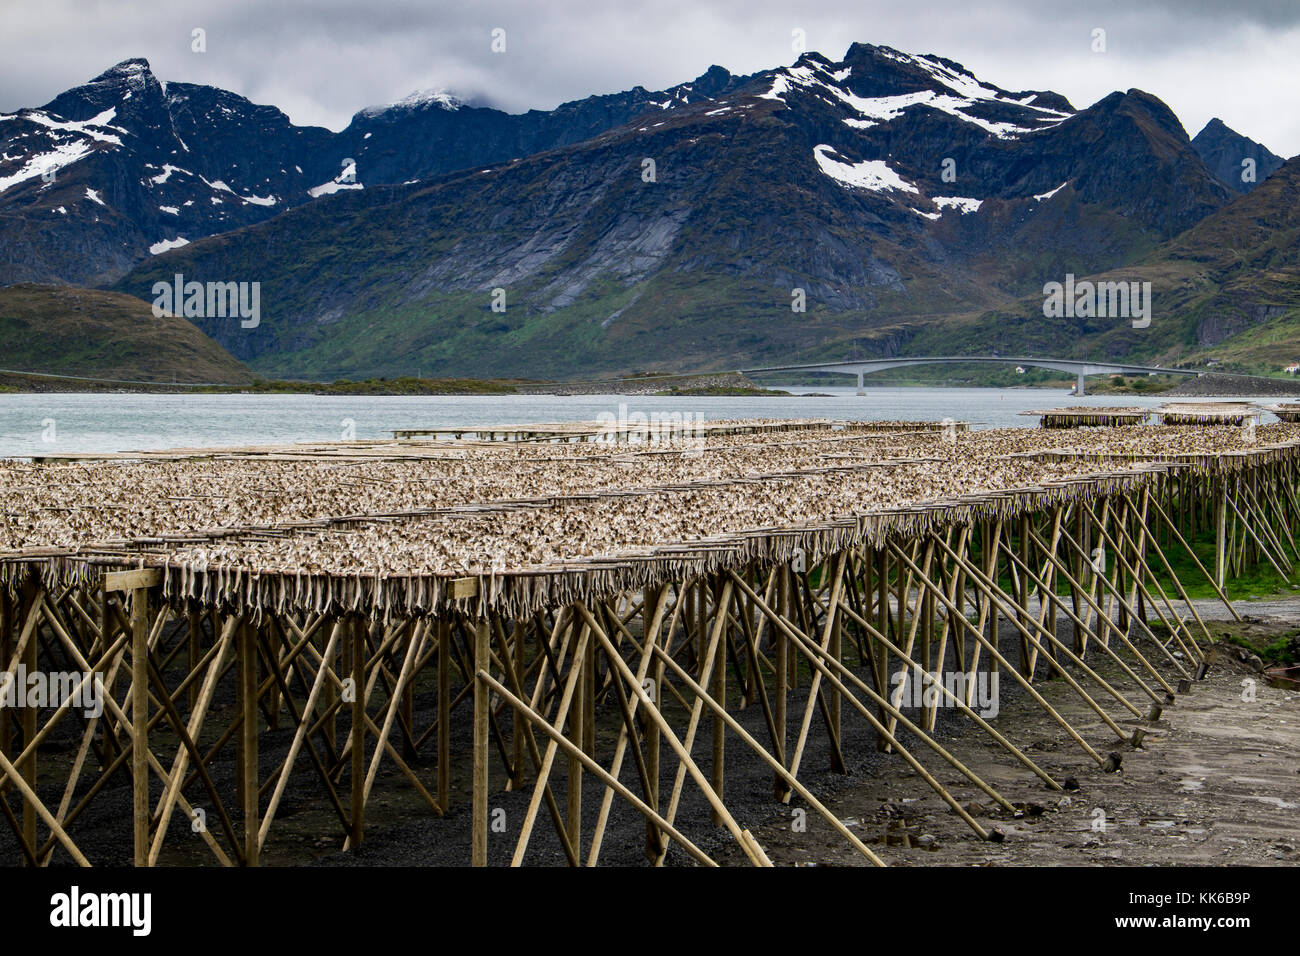 Artic cod drying on wooden racks besides a fjord in the Lofoten Islands, Norway, Europe Stock Photo